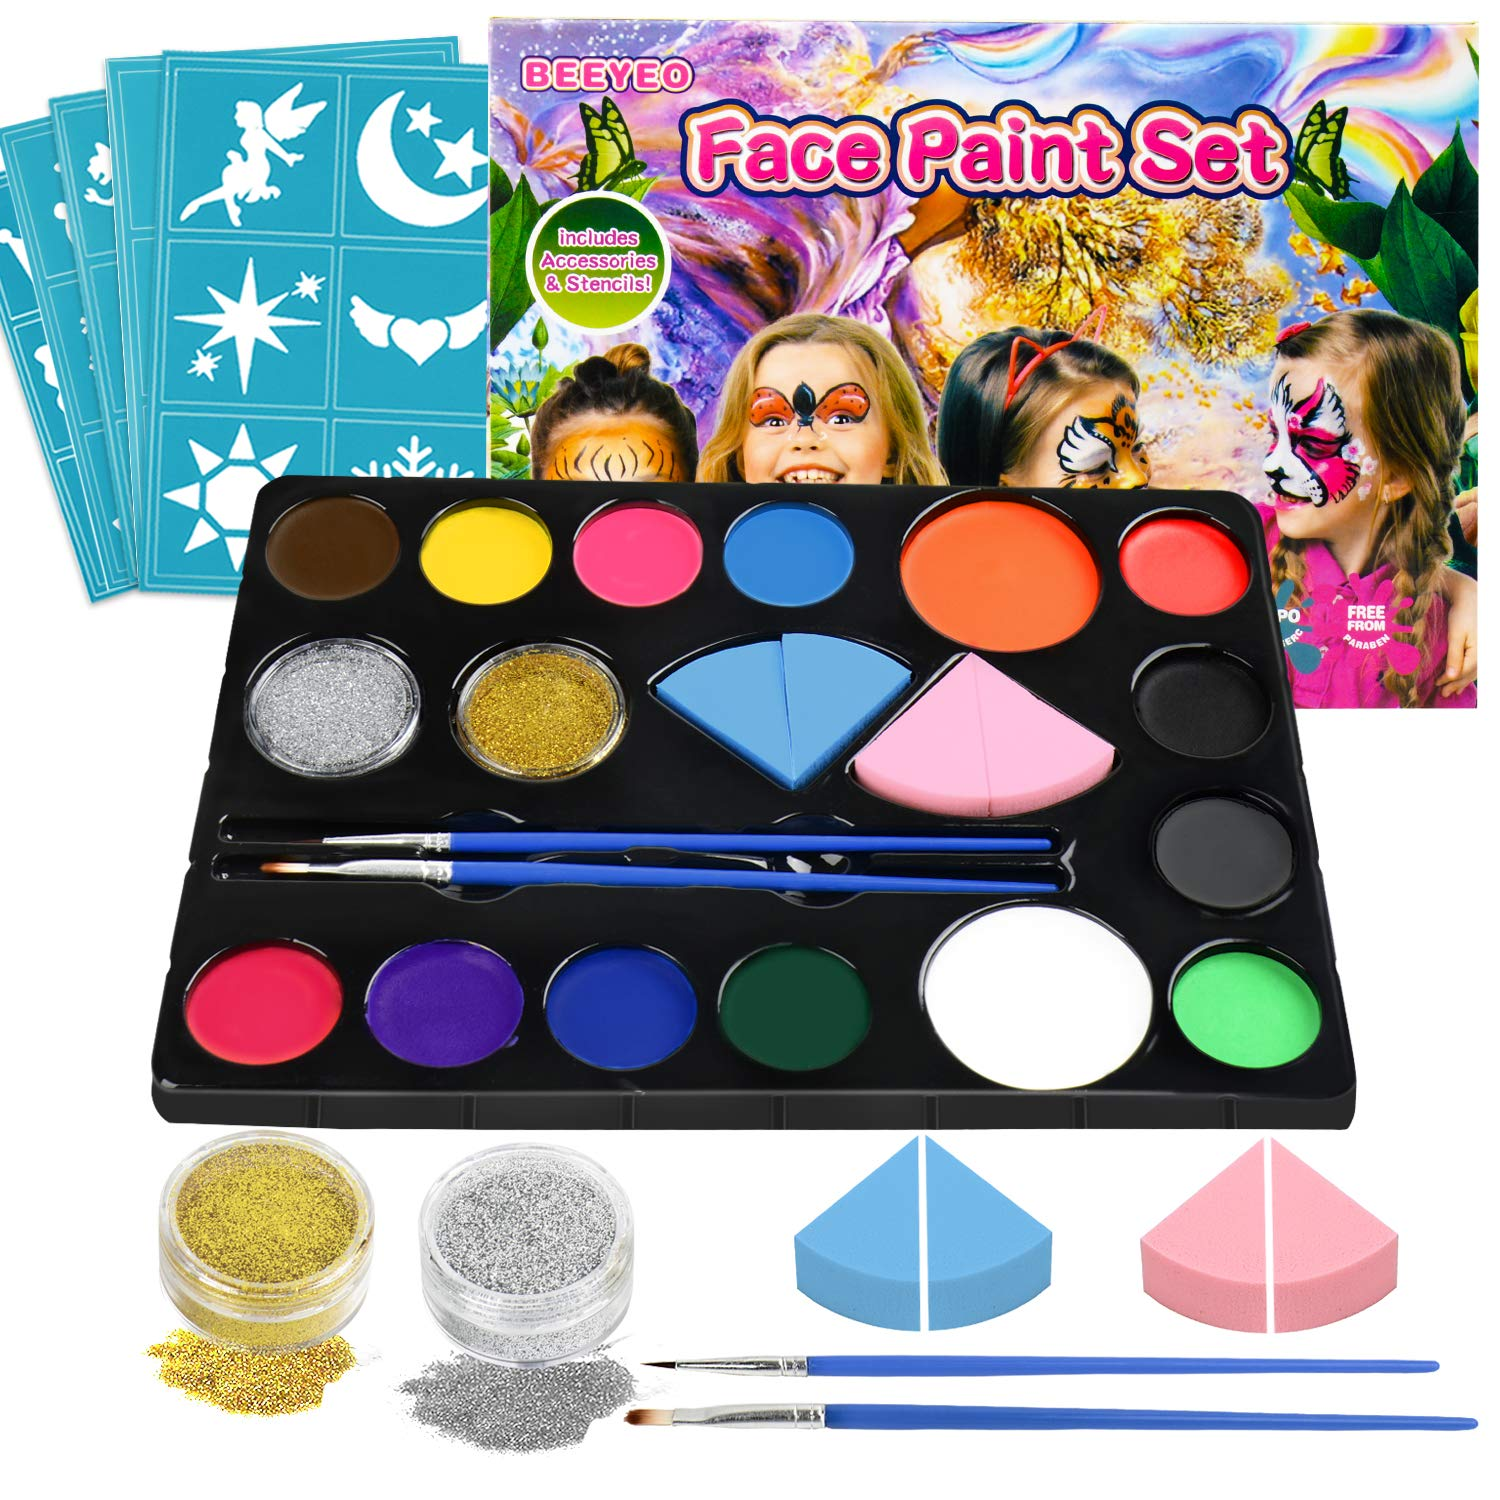 Face Paint Kit for Kids, BEEYEO Face Paint Palette Water Based Non Toxic Face Painting for Sensitive Skin Professional Face Paint Party Supplies with 14 Colors, 2 Glitters, 30 Stencils, 4 Makeup Spong